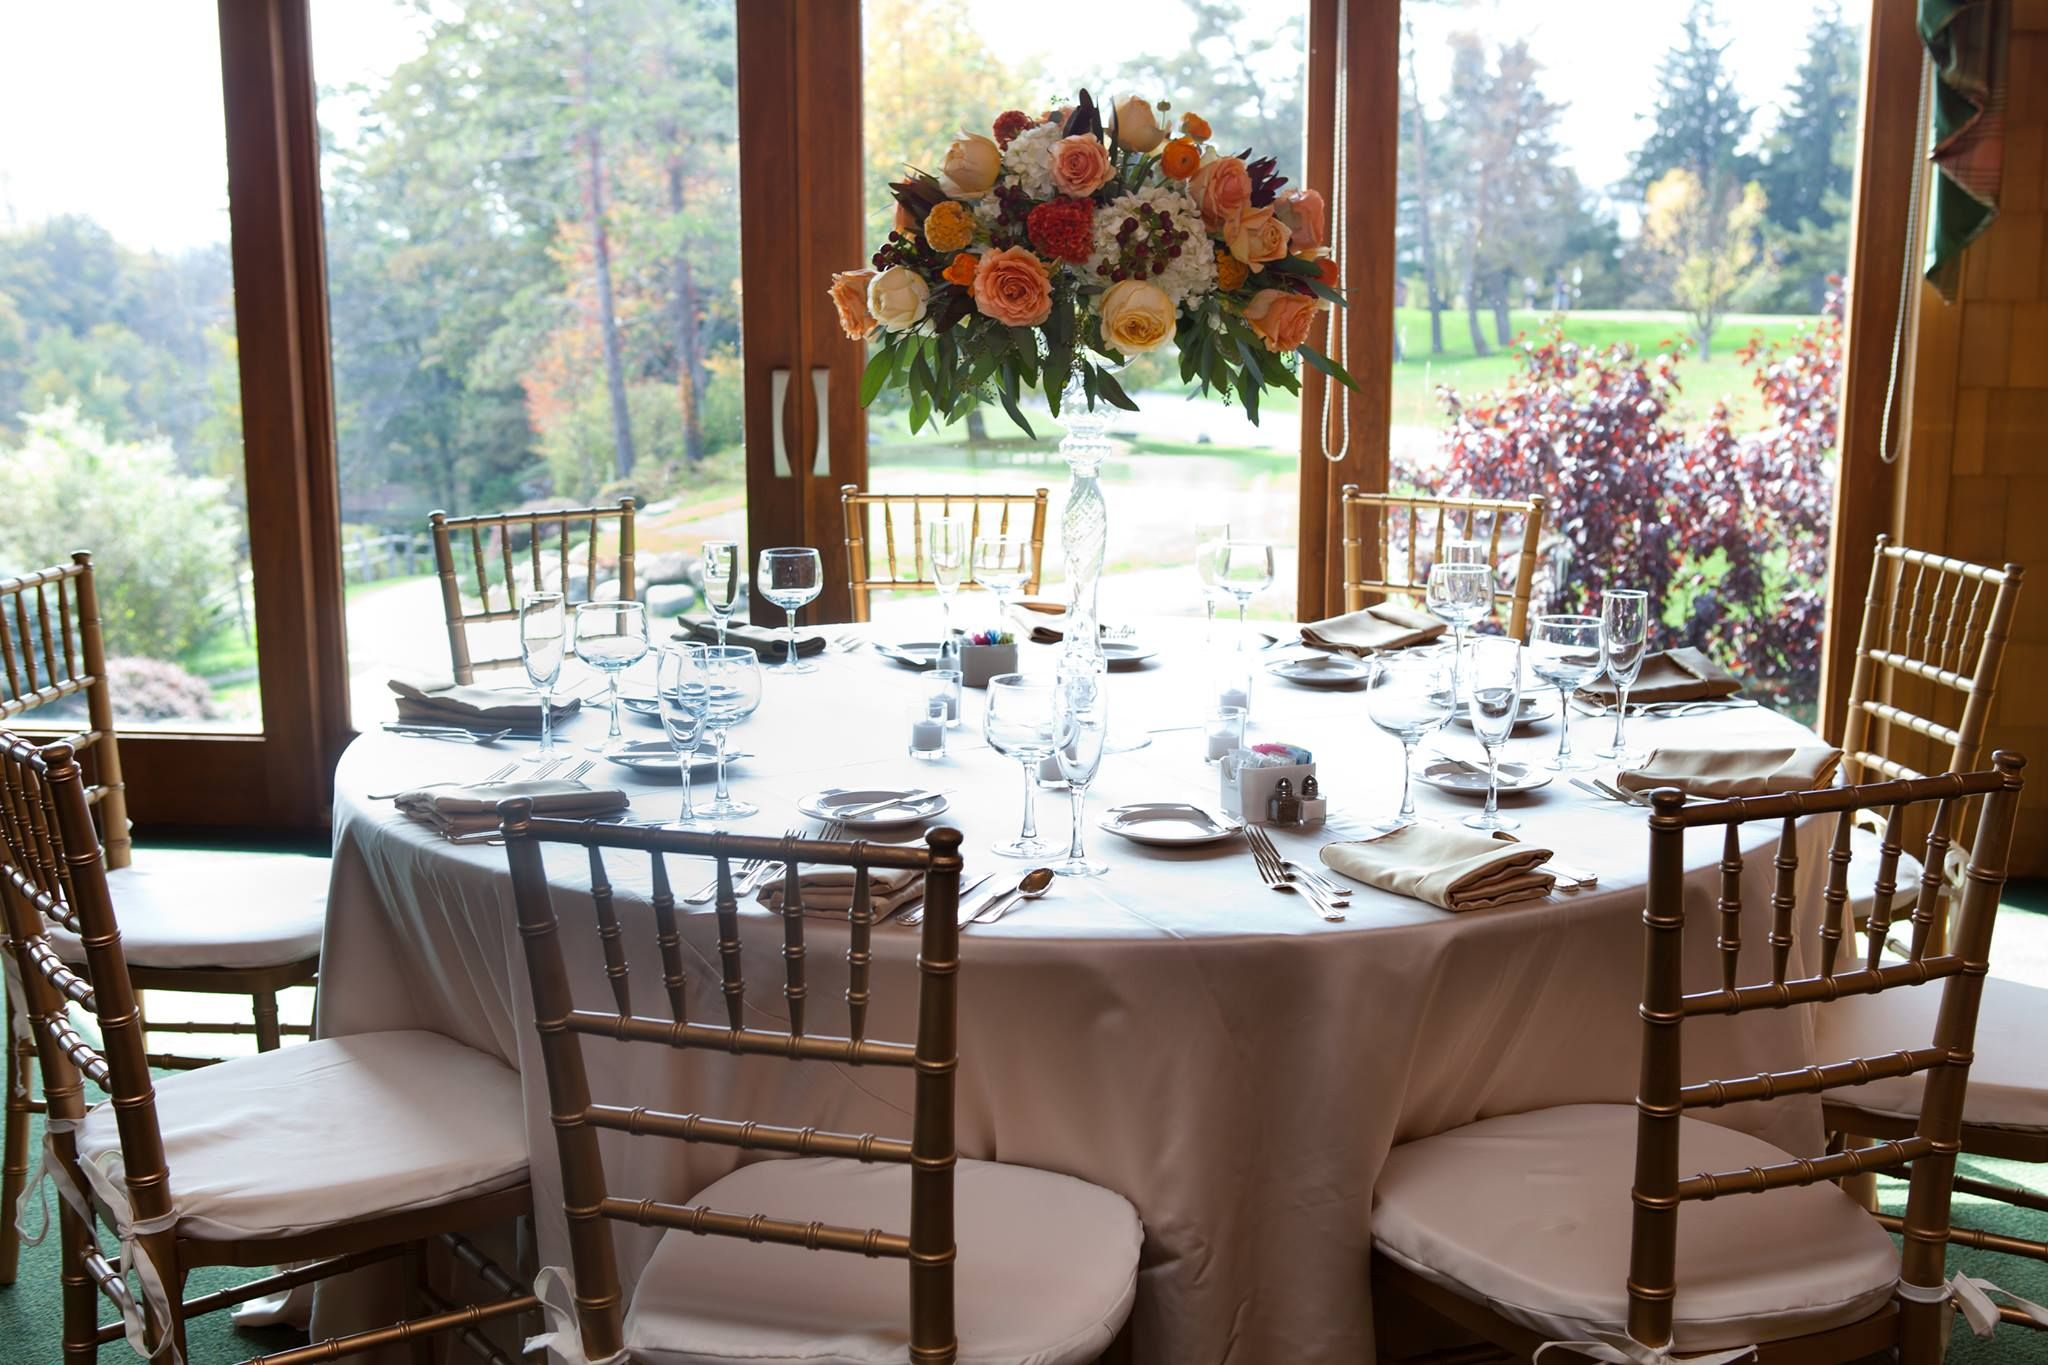 Lakeview Dining Room Stunning Lakeview Dining Room  Lakeview Dining Room  Real Skytop Weddings Review